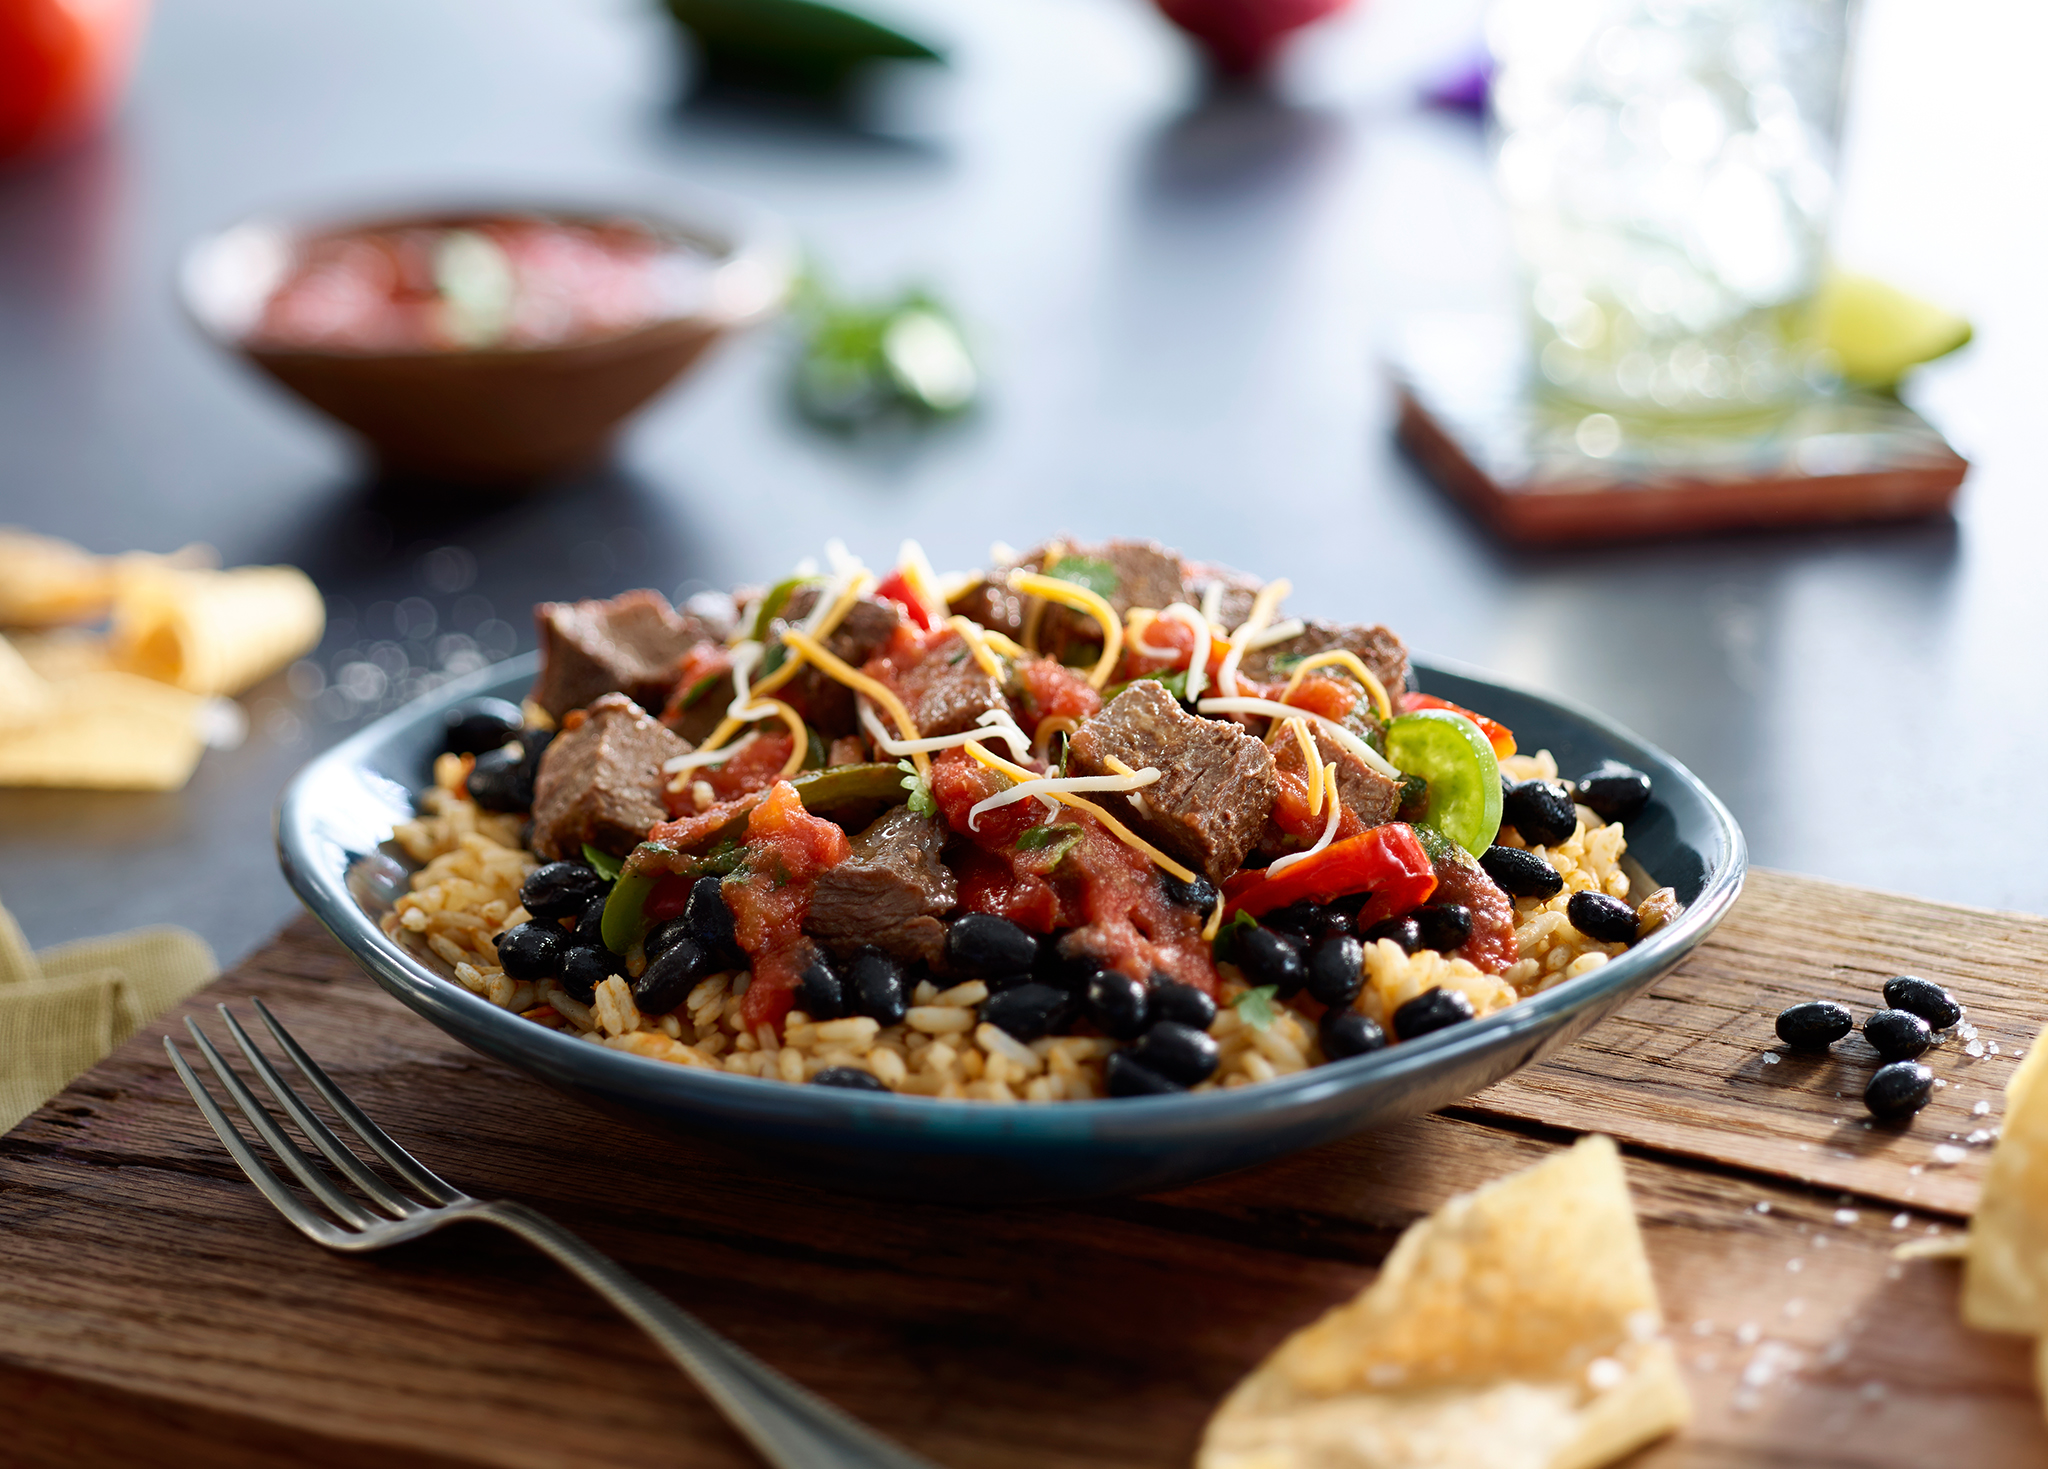 Salsaritas_steak-burrito-bowl-WEB.jpg